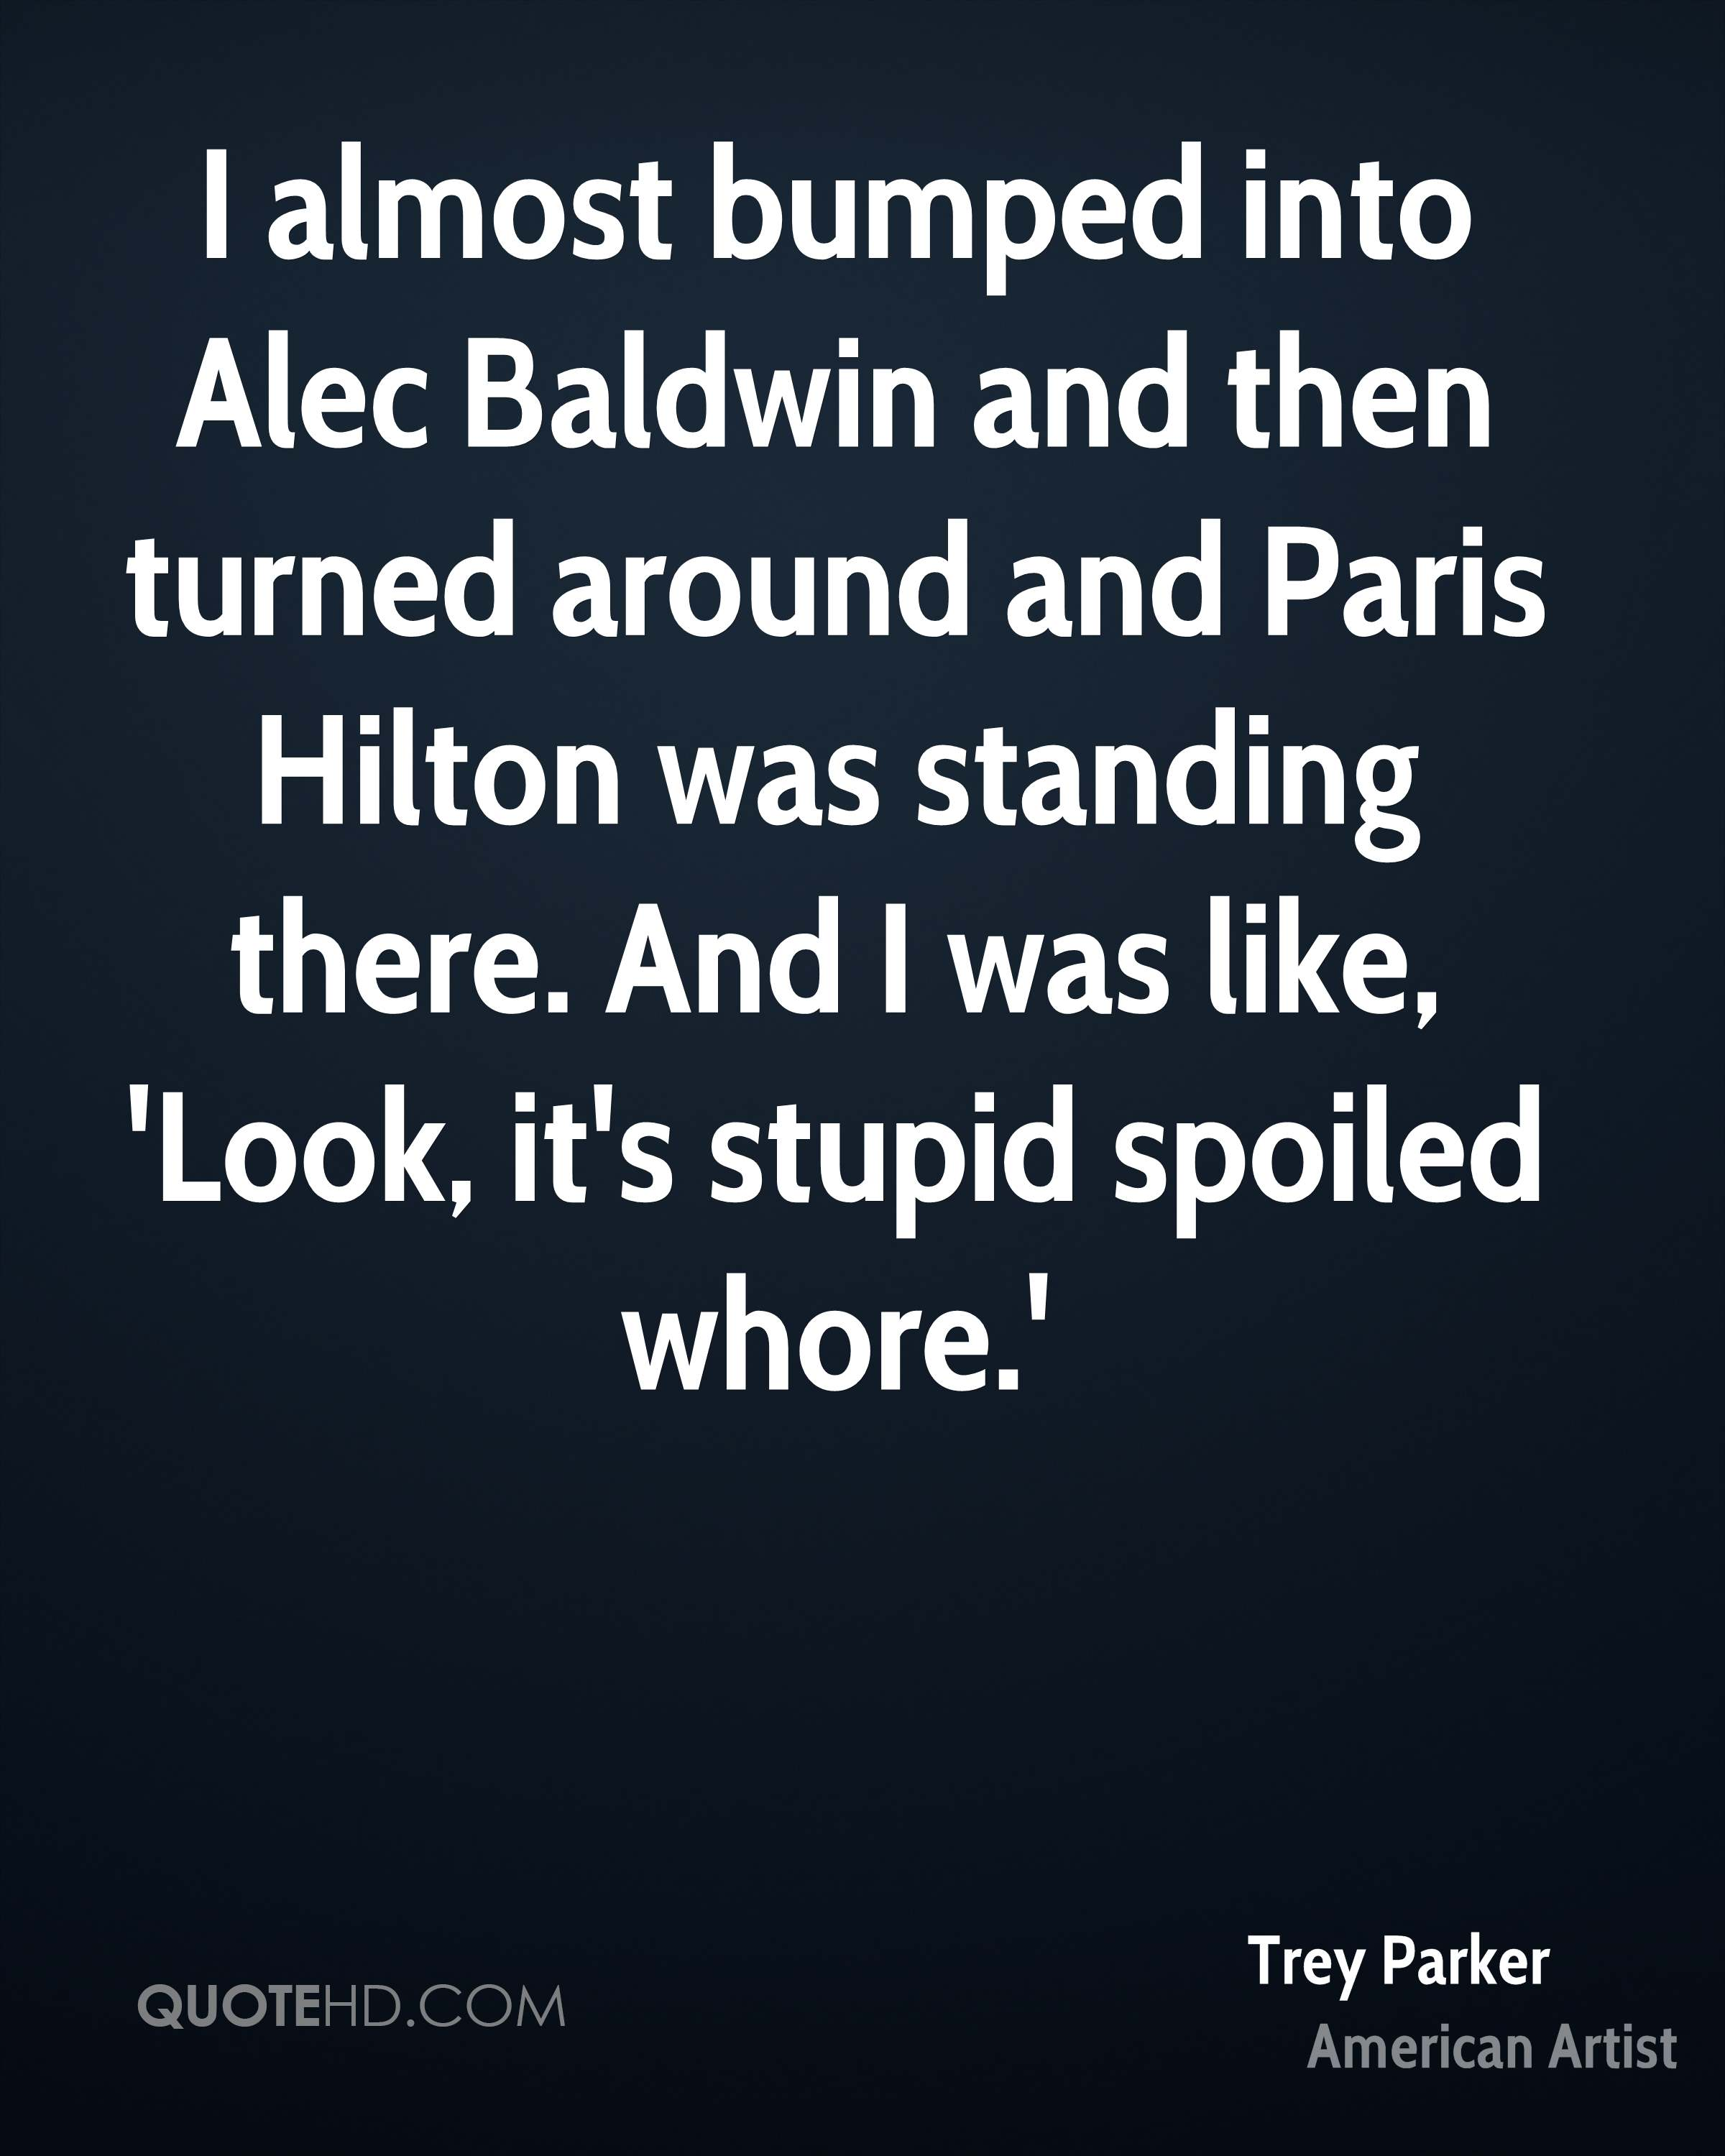 I almost bumped into Alec Baldwin and then turned around and Paris Hilton was standing there. And I was like, 'Look, it's stupid spoiled whore.'